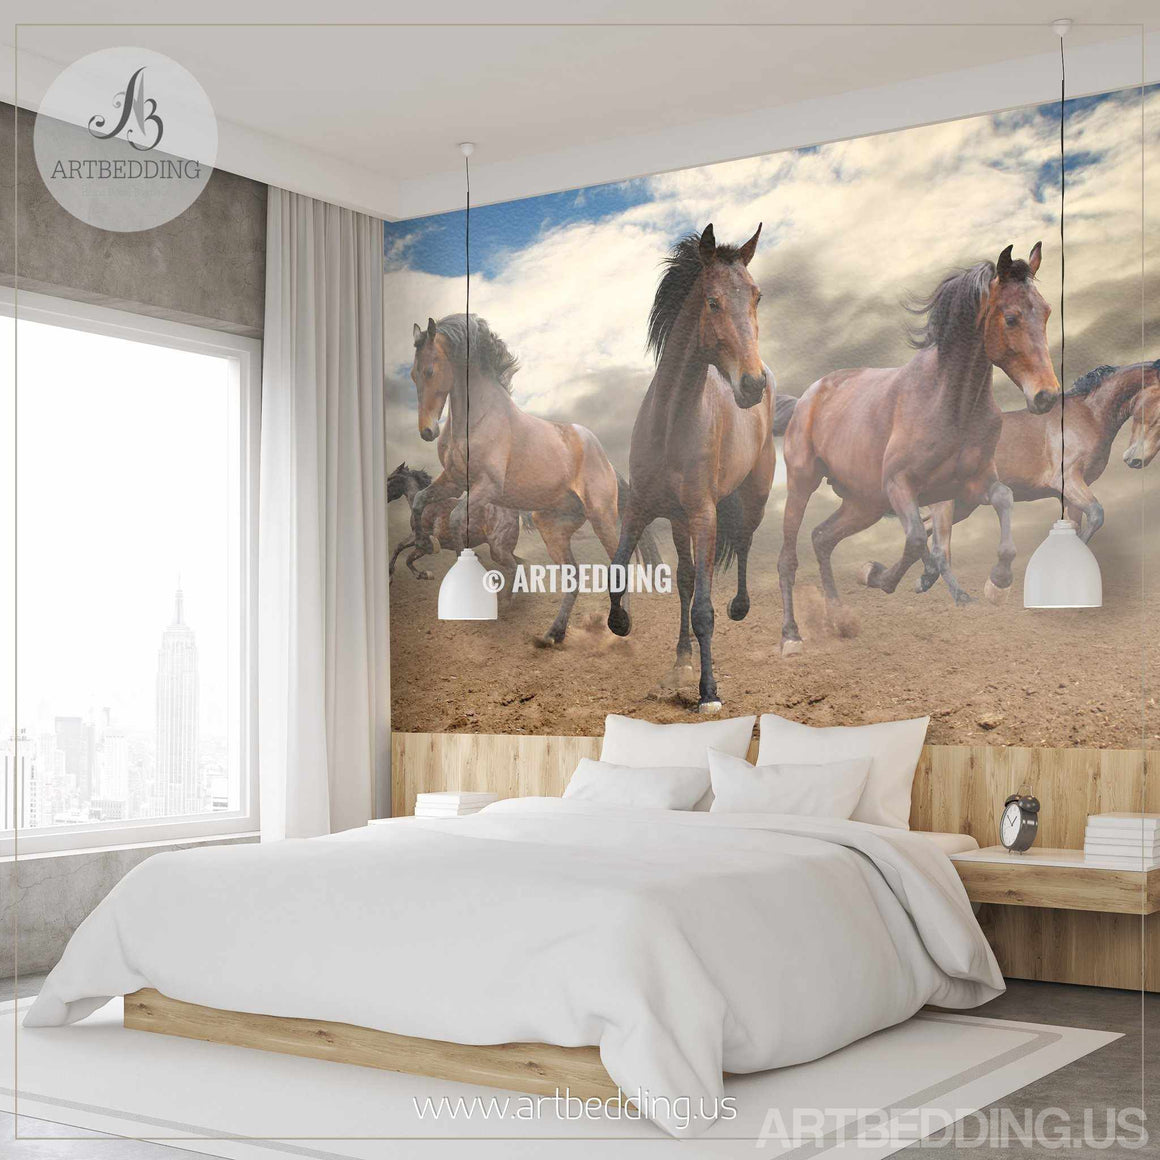 Wild Horses galloping Wall Mural, Self Adhesive Peel & Stick Photo Mural, Wild Horses wall decor wall mural